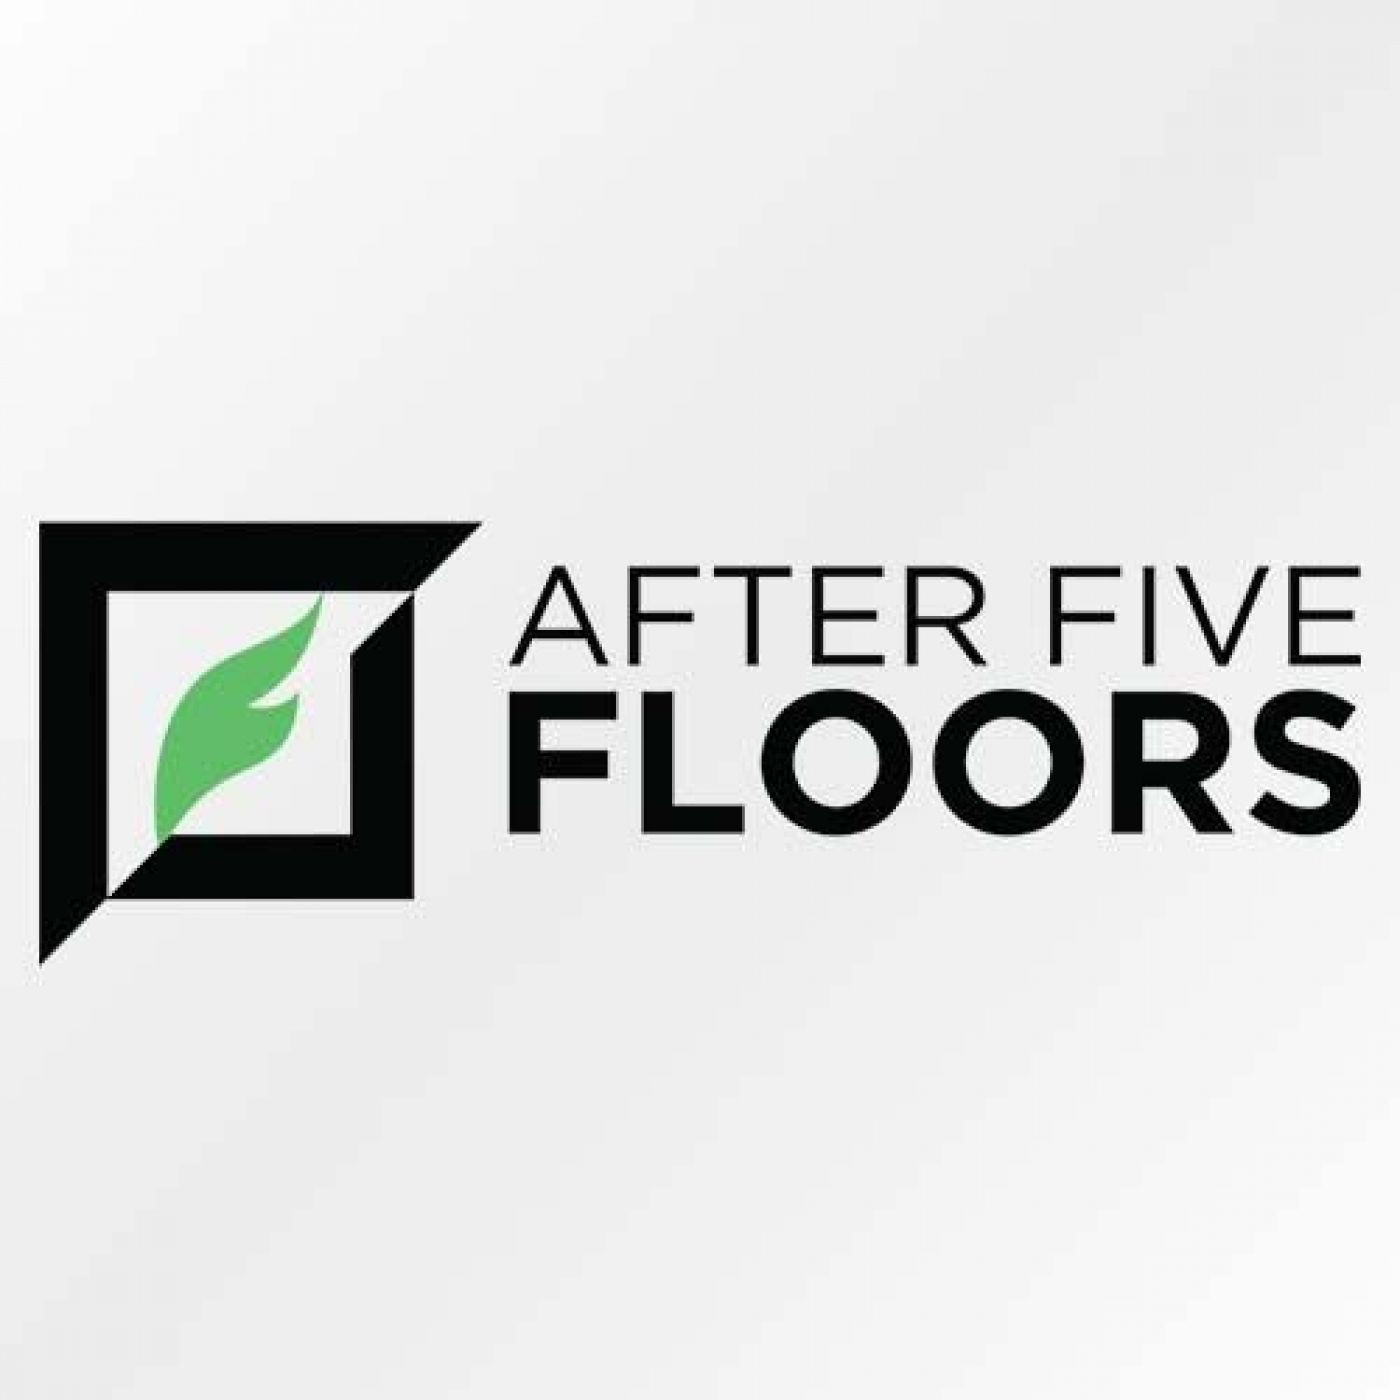 Welcome, After Five Floors!